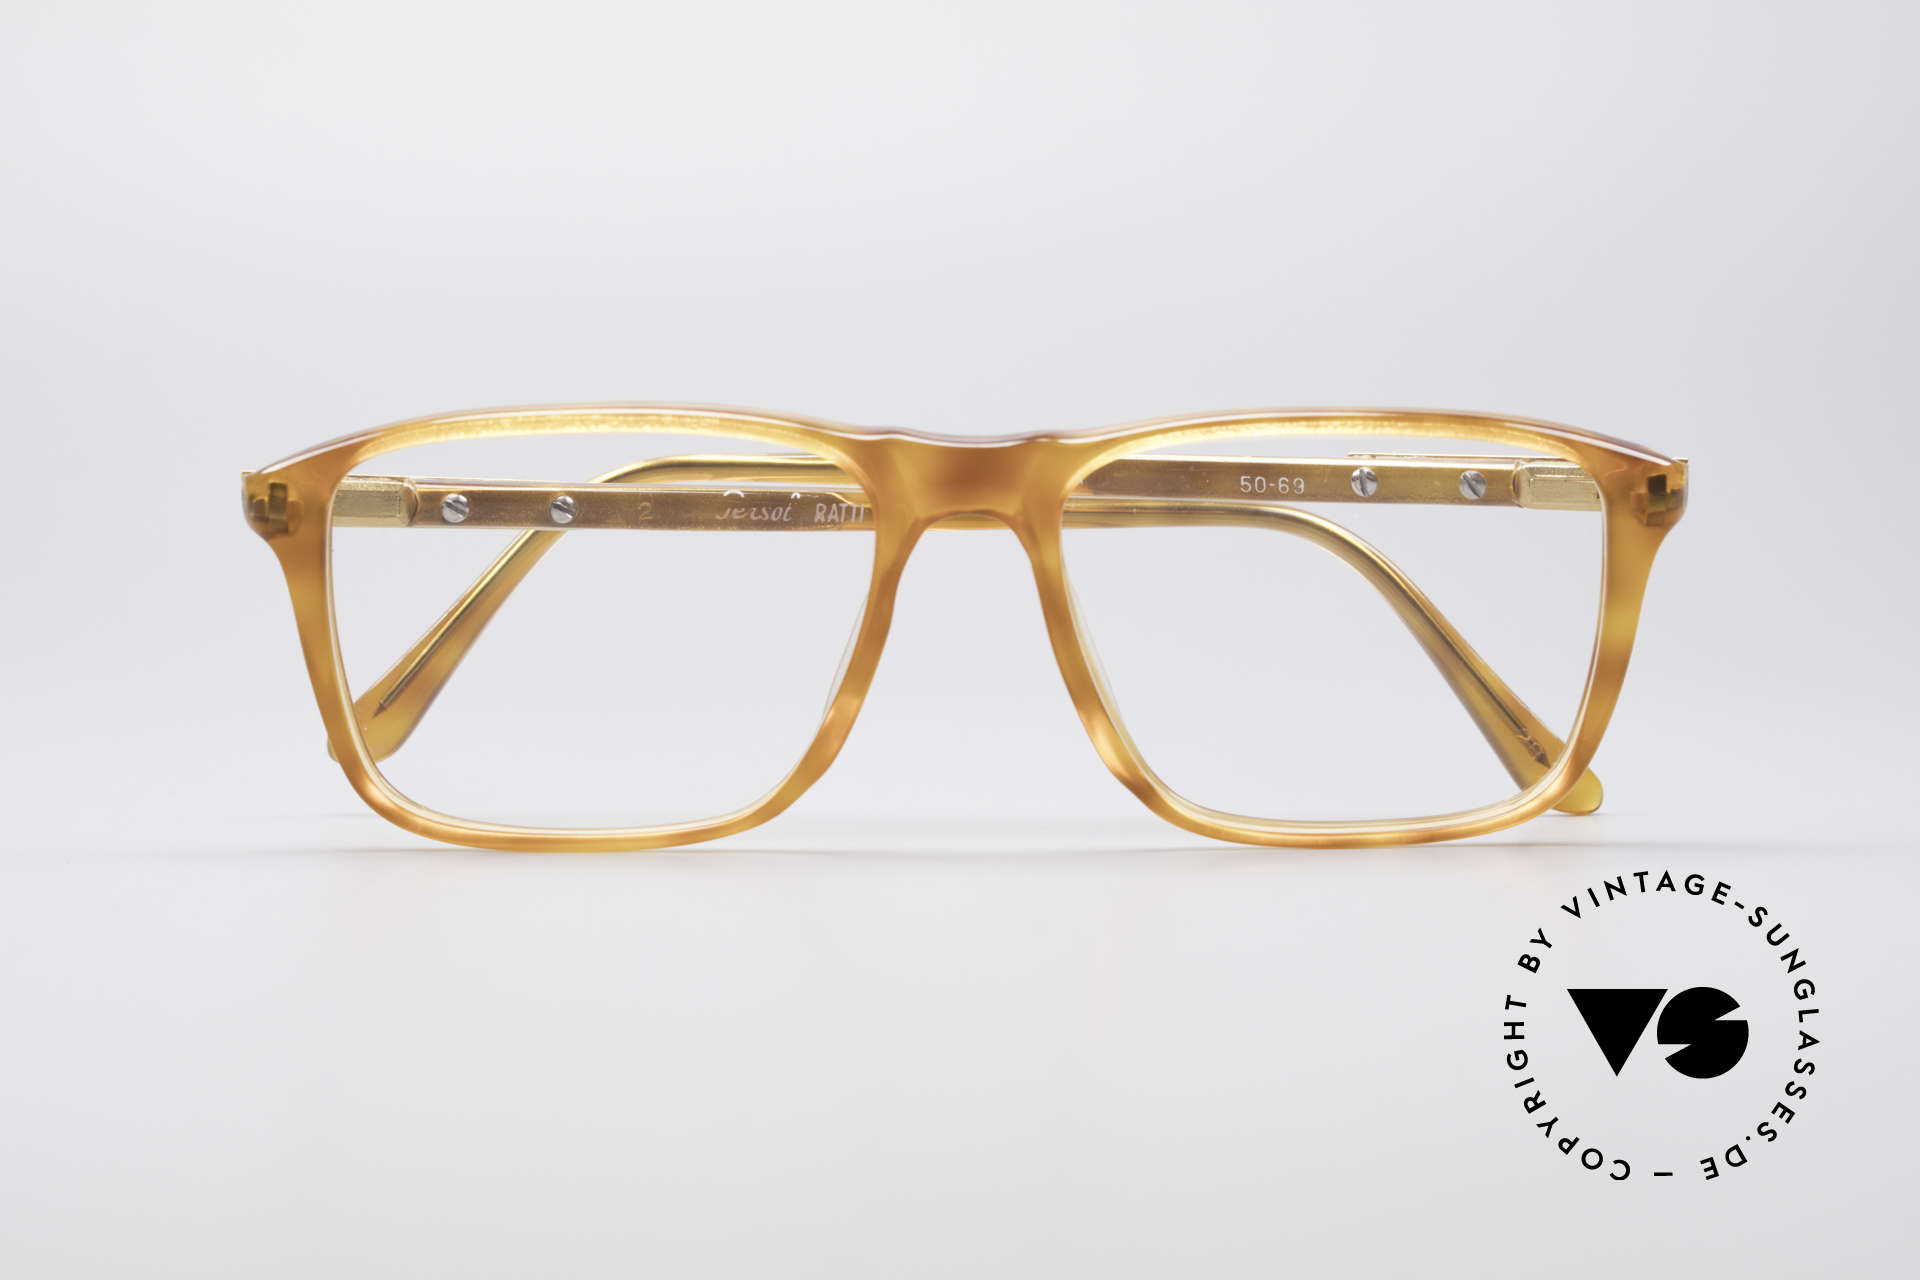 Persol Manager 13 Ratti Gold Plated 80's Frame, frame can be glazed with optical lenses of any kind, Made for Men